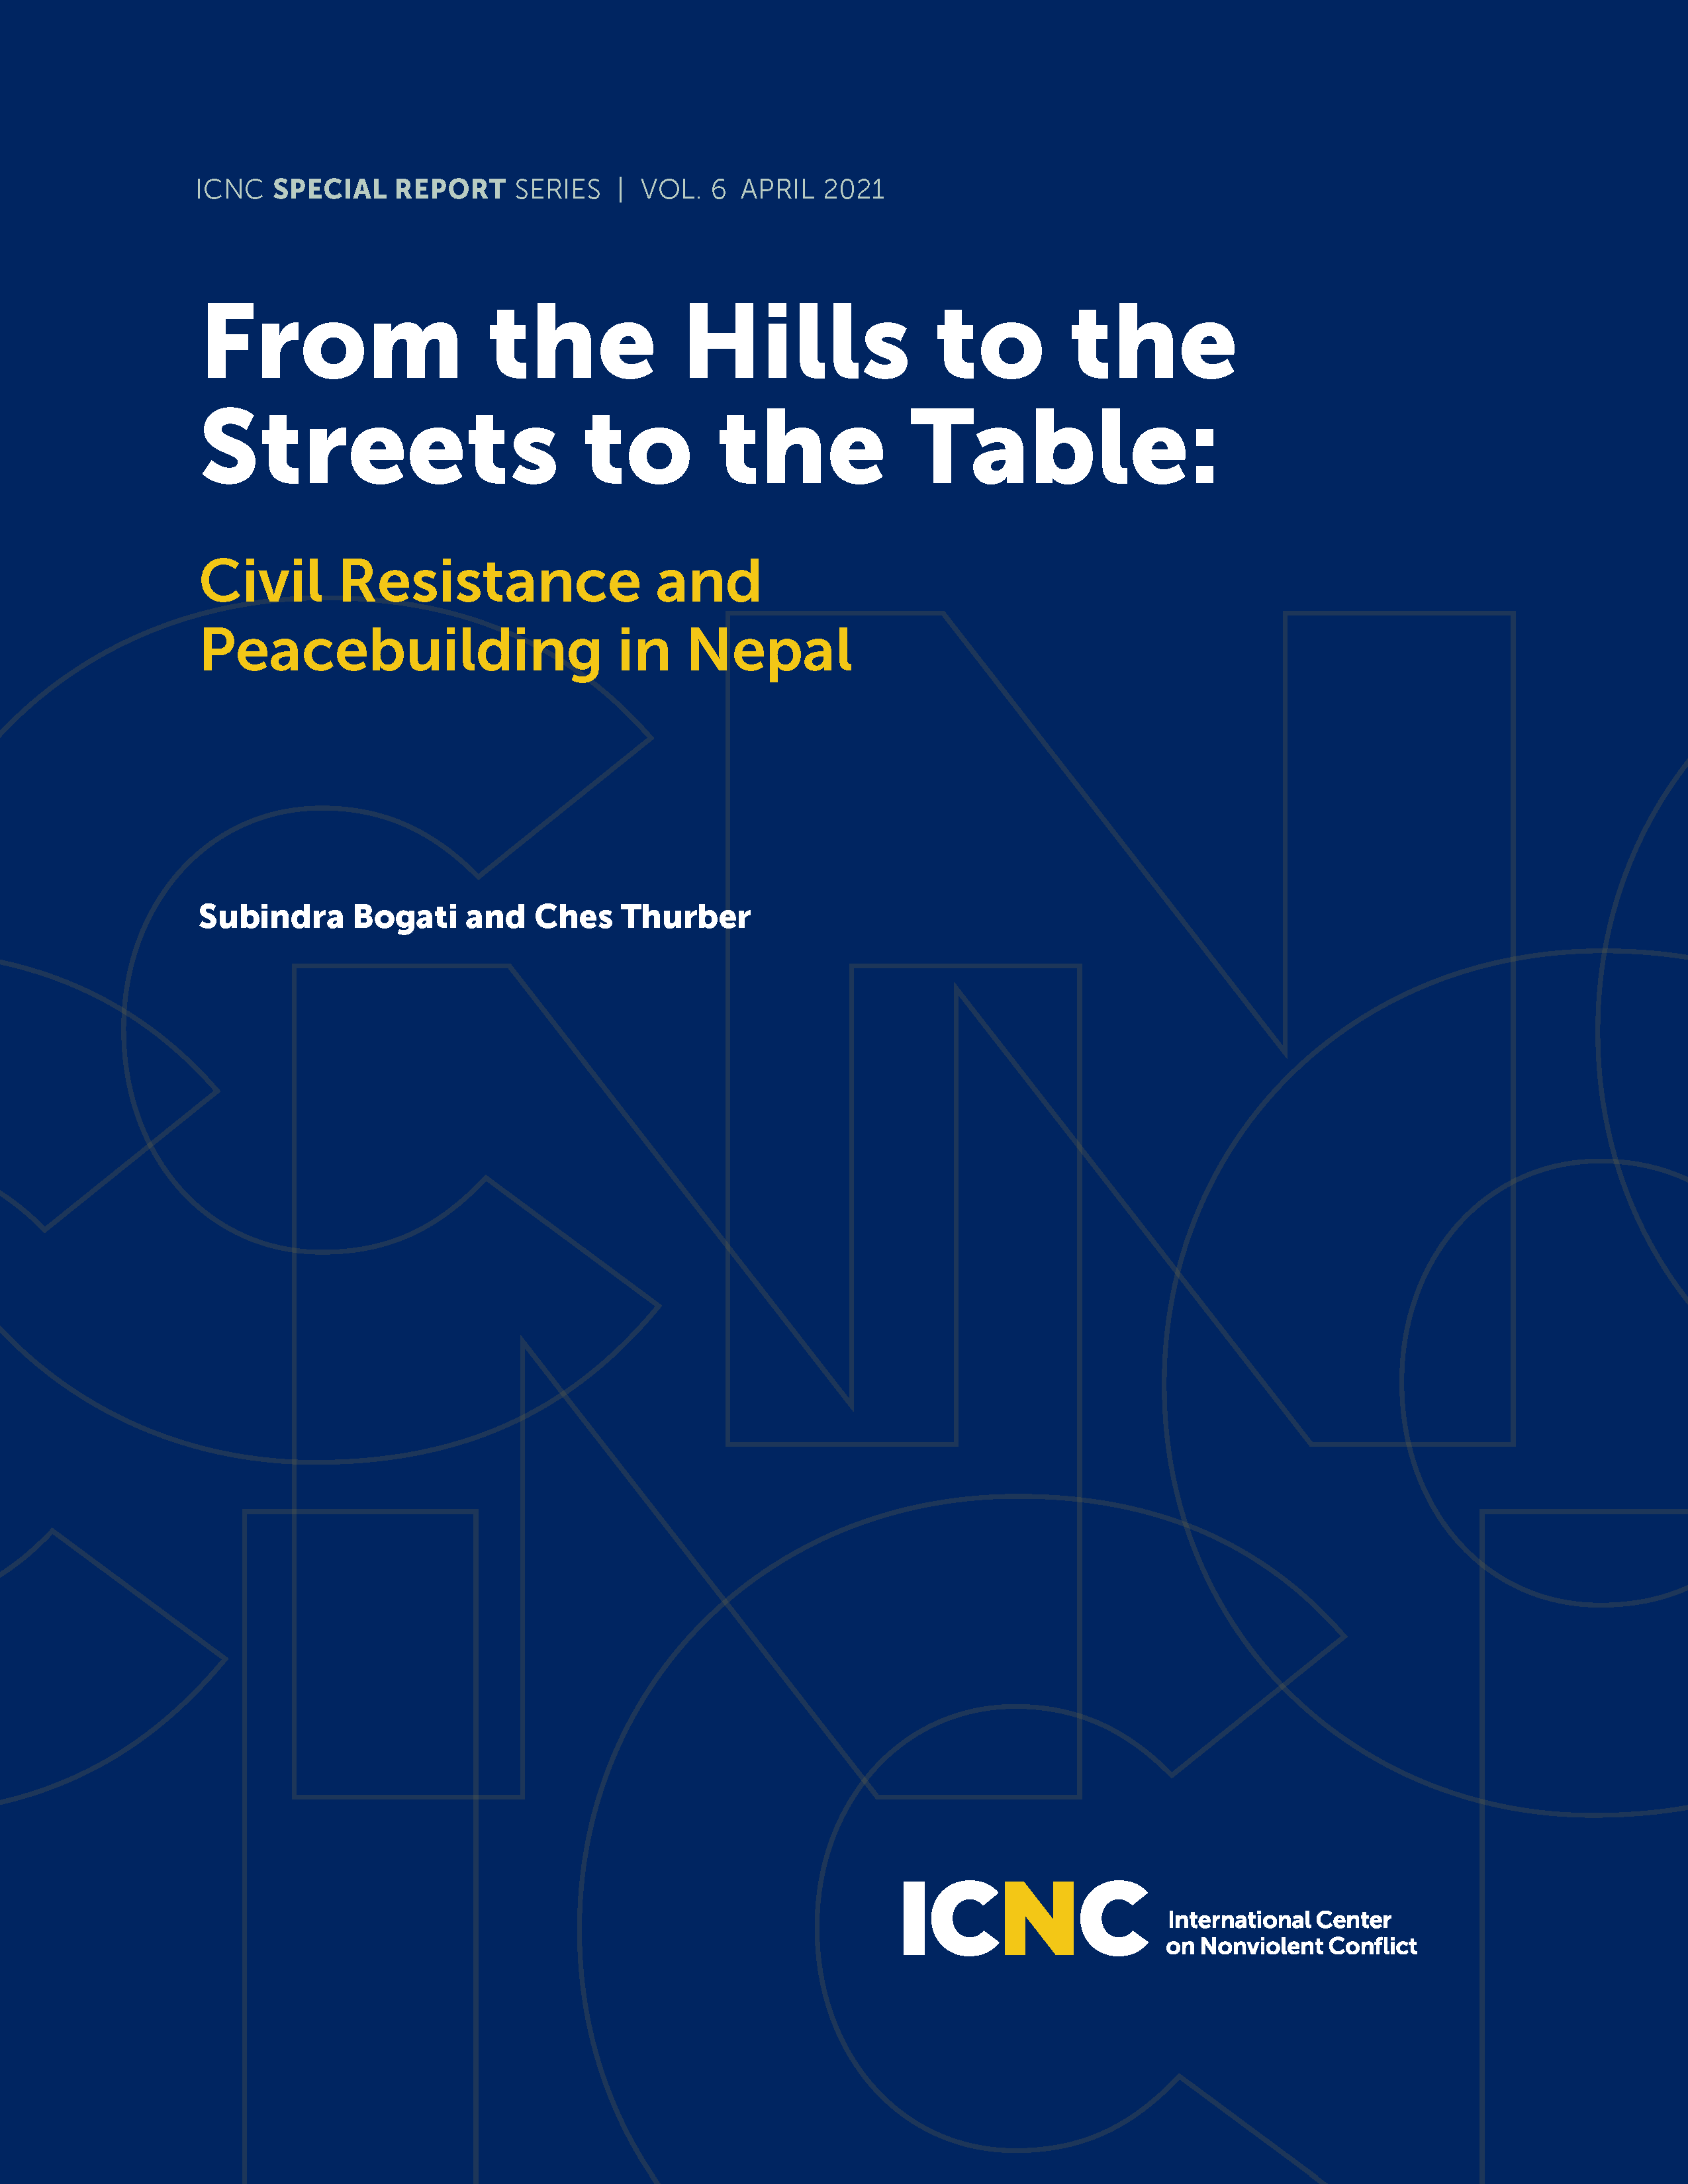 From the Hills to the Streets to the Table: Civil Resistance and Peacebuilding in Nepal